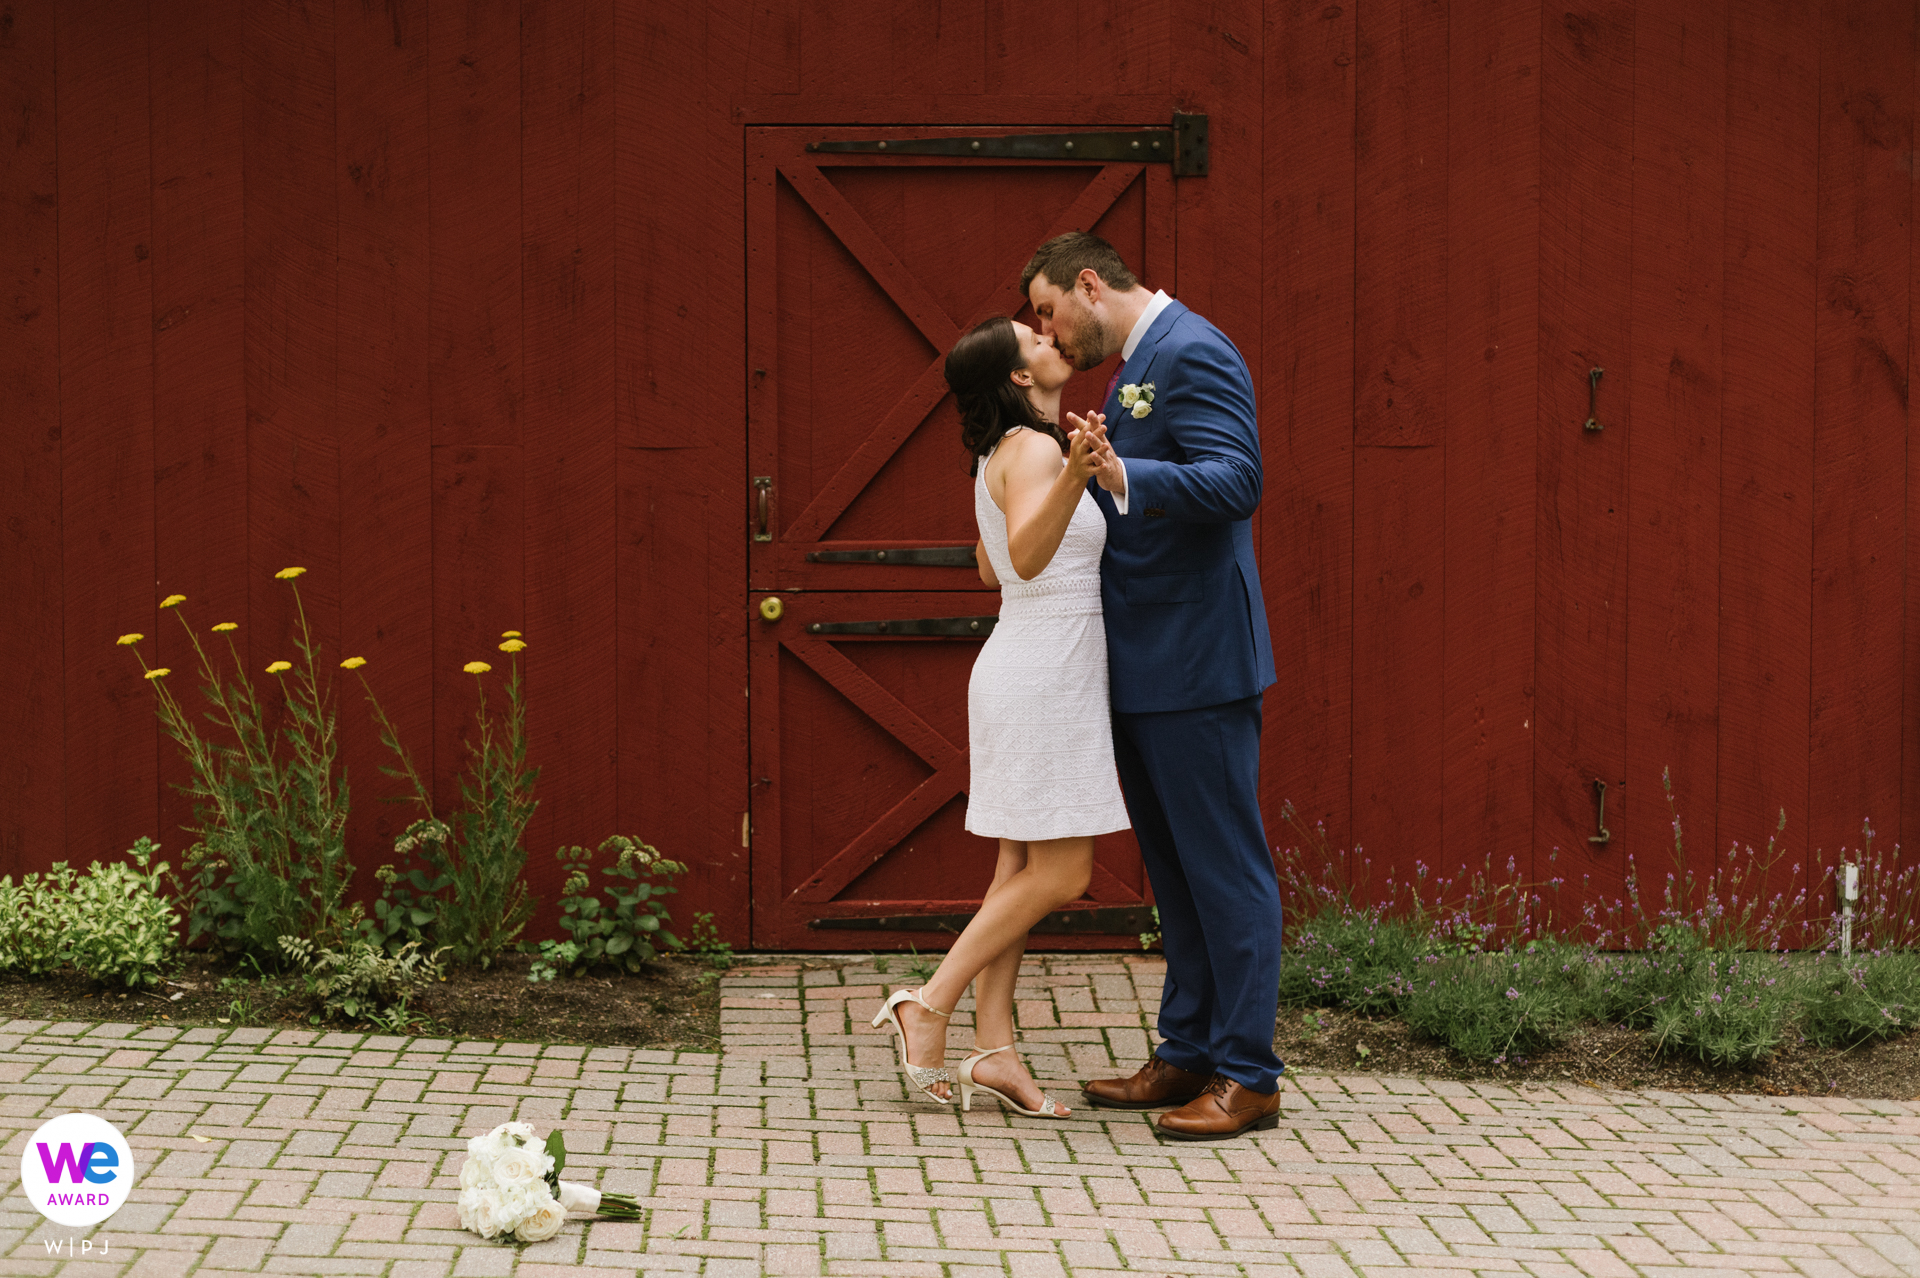 Pruyn House Wedding Day Portrait, NY | The bride and groom pose for a portrait with flowers by the side and a wedding bouquet on the ground in front of them